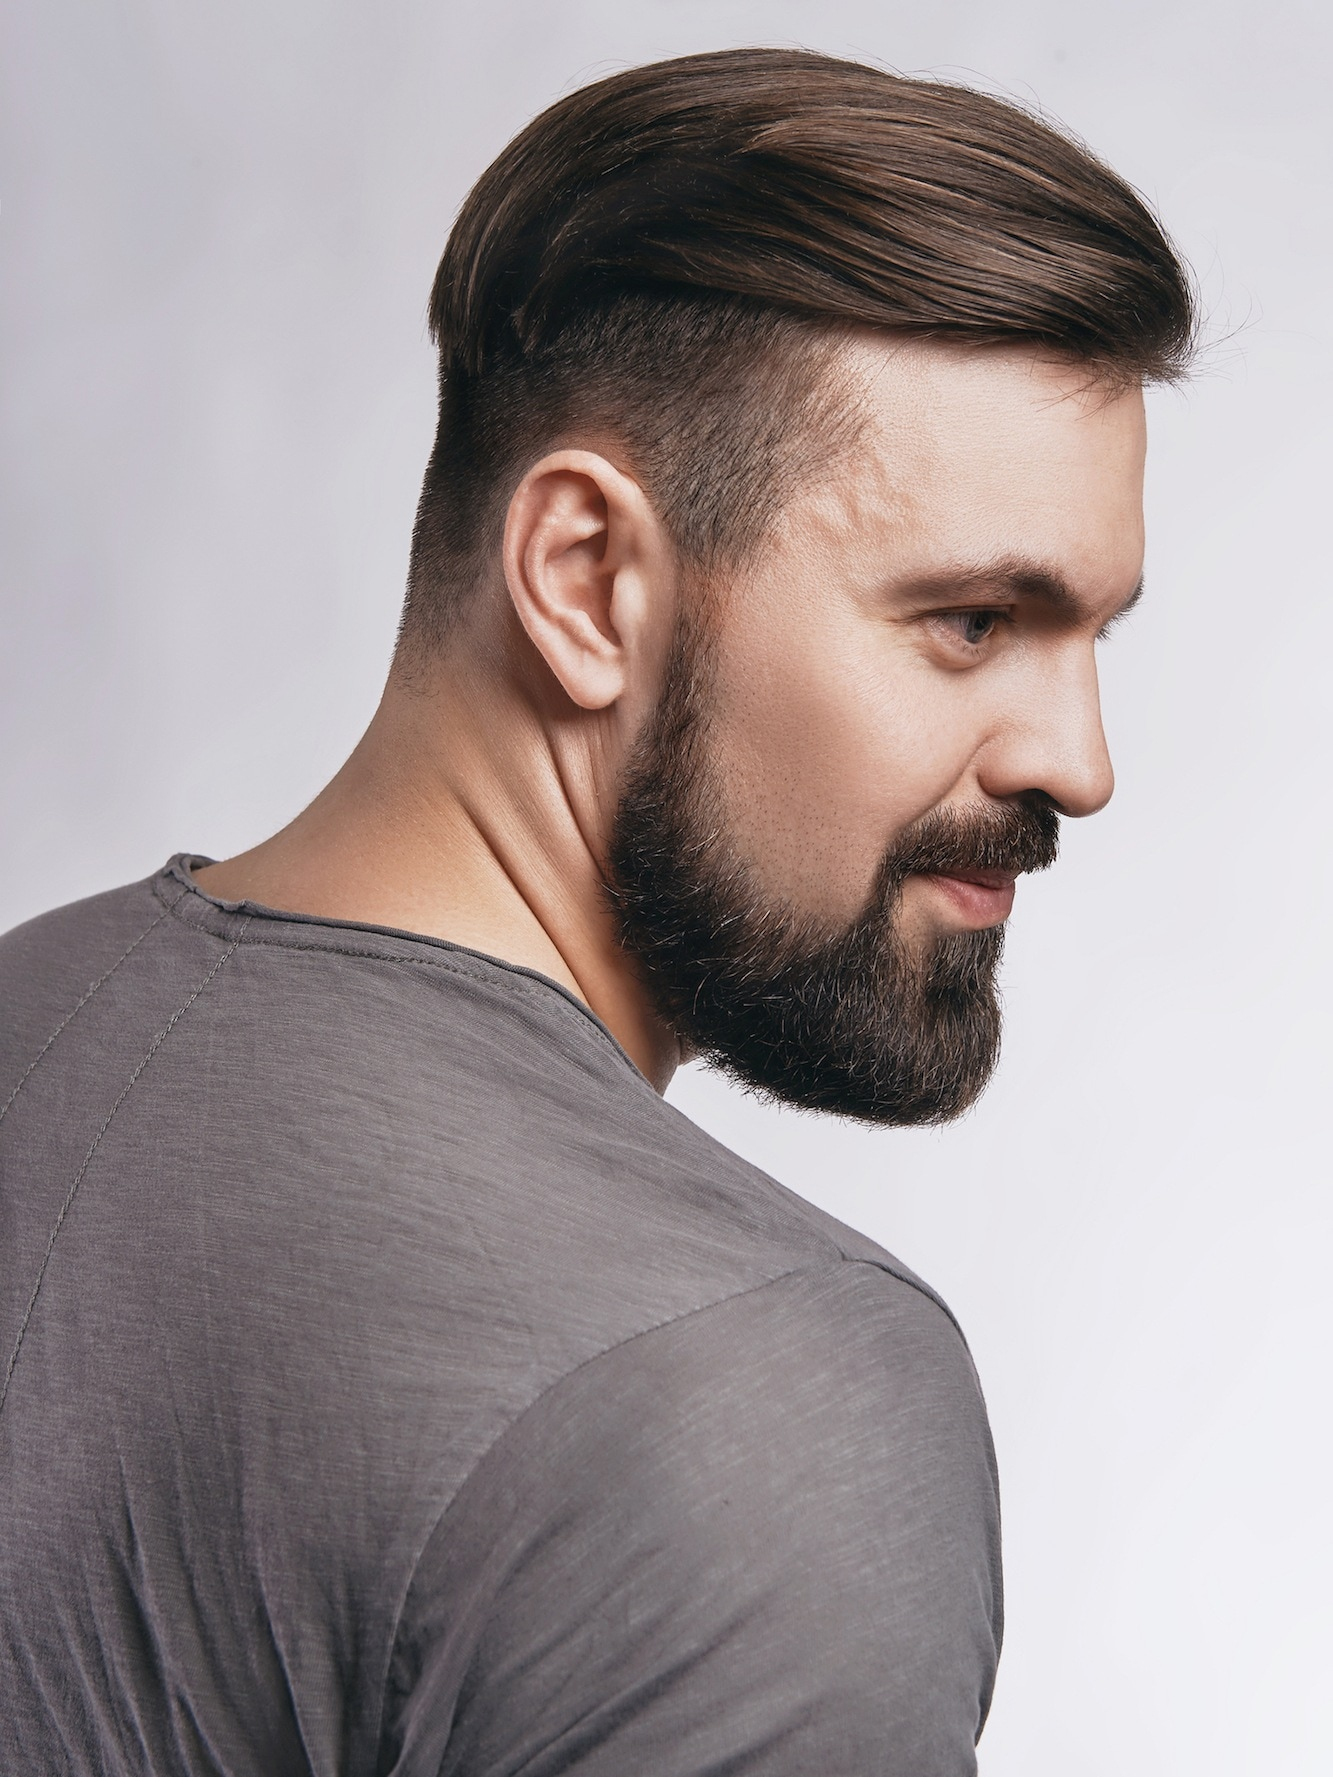 Rockabilly hairstyle dengan model rambut undercut dan gaya sleek.